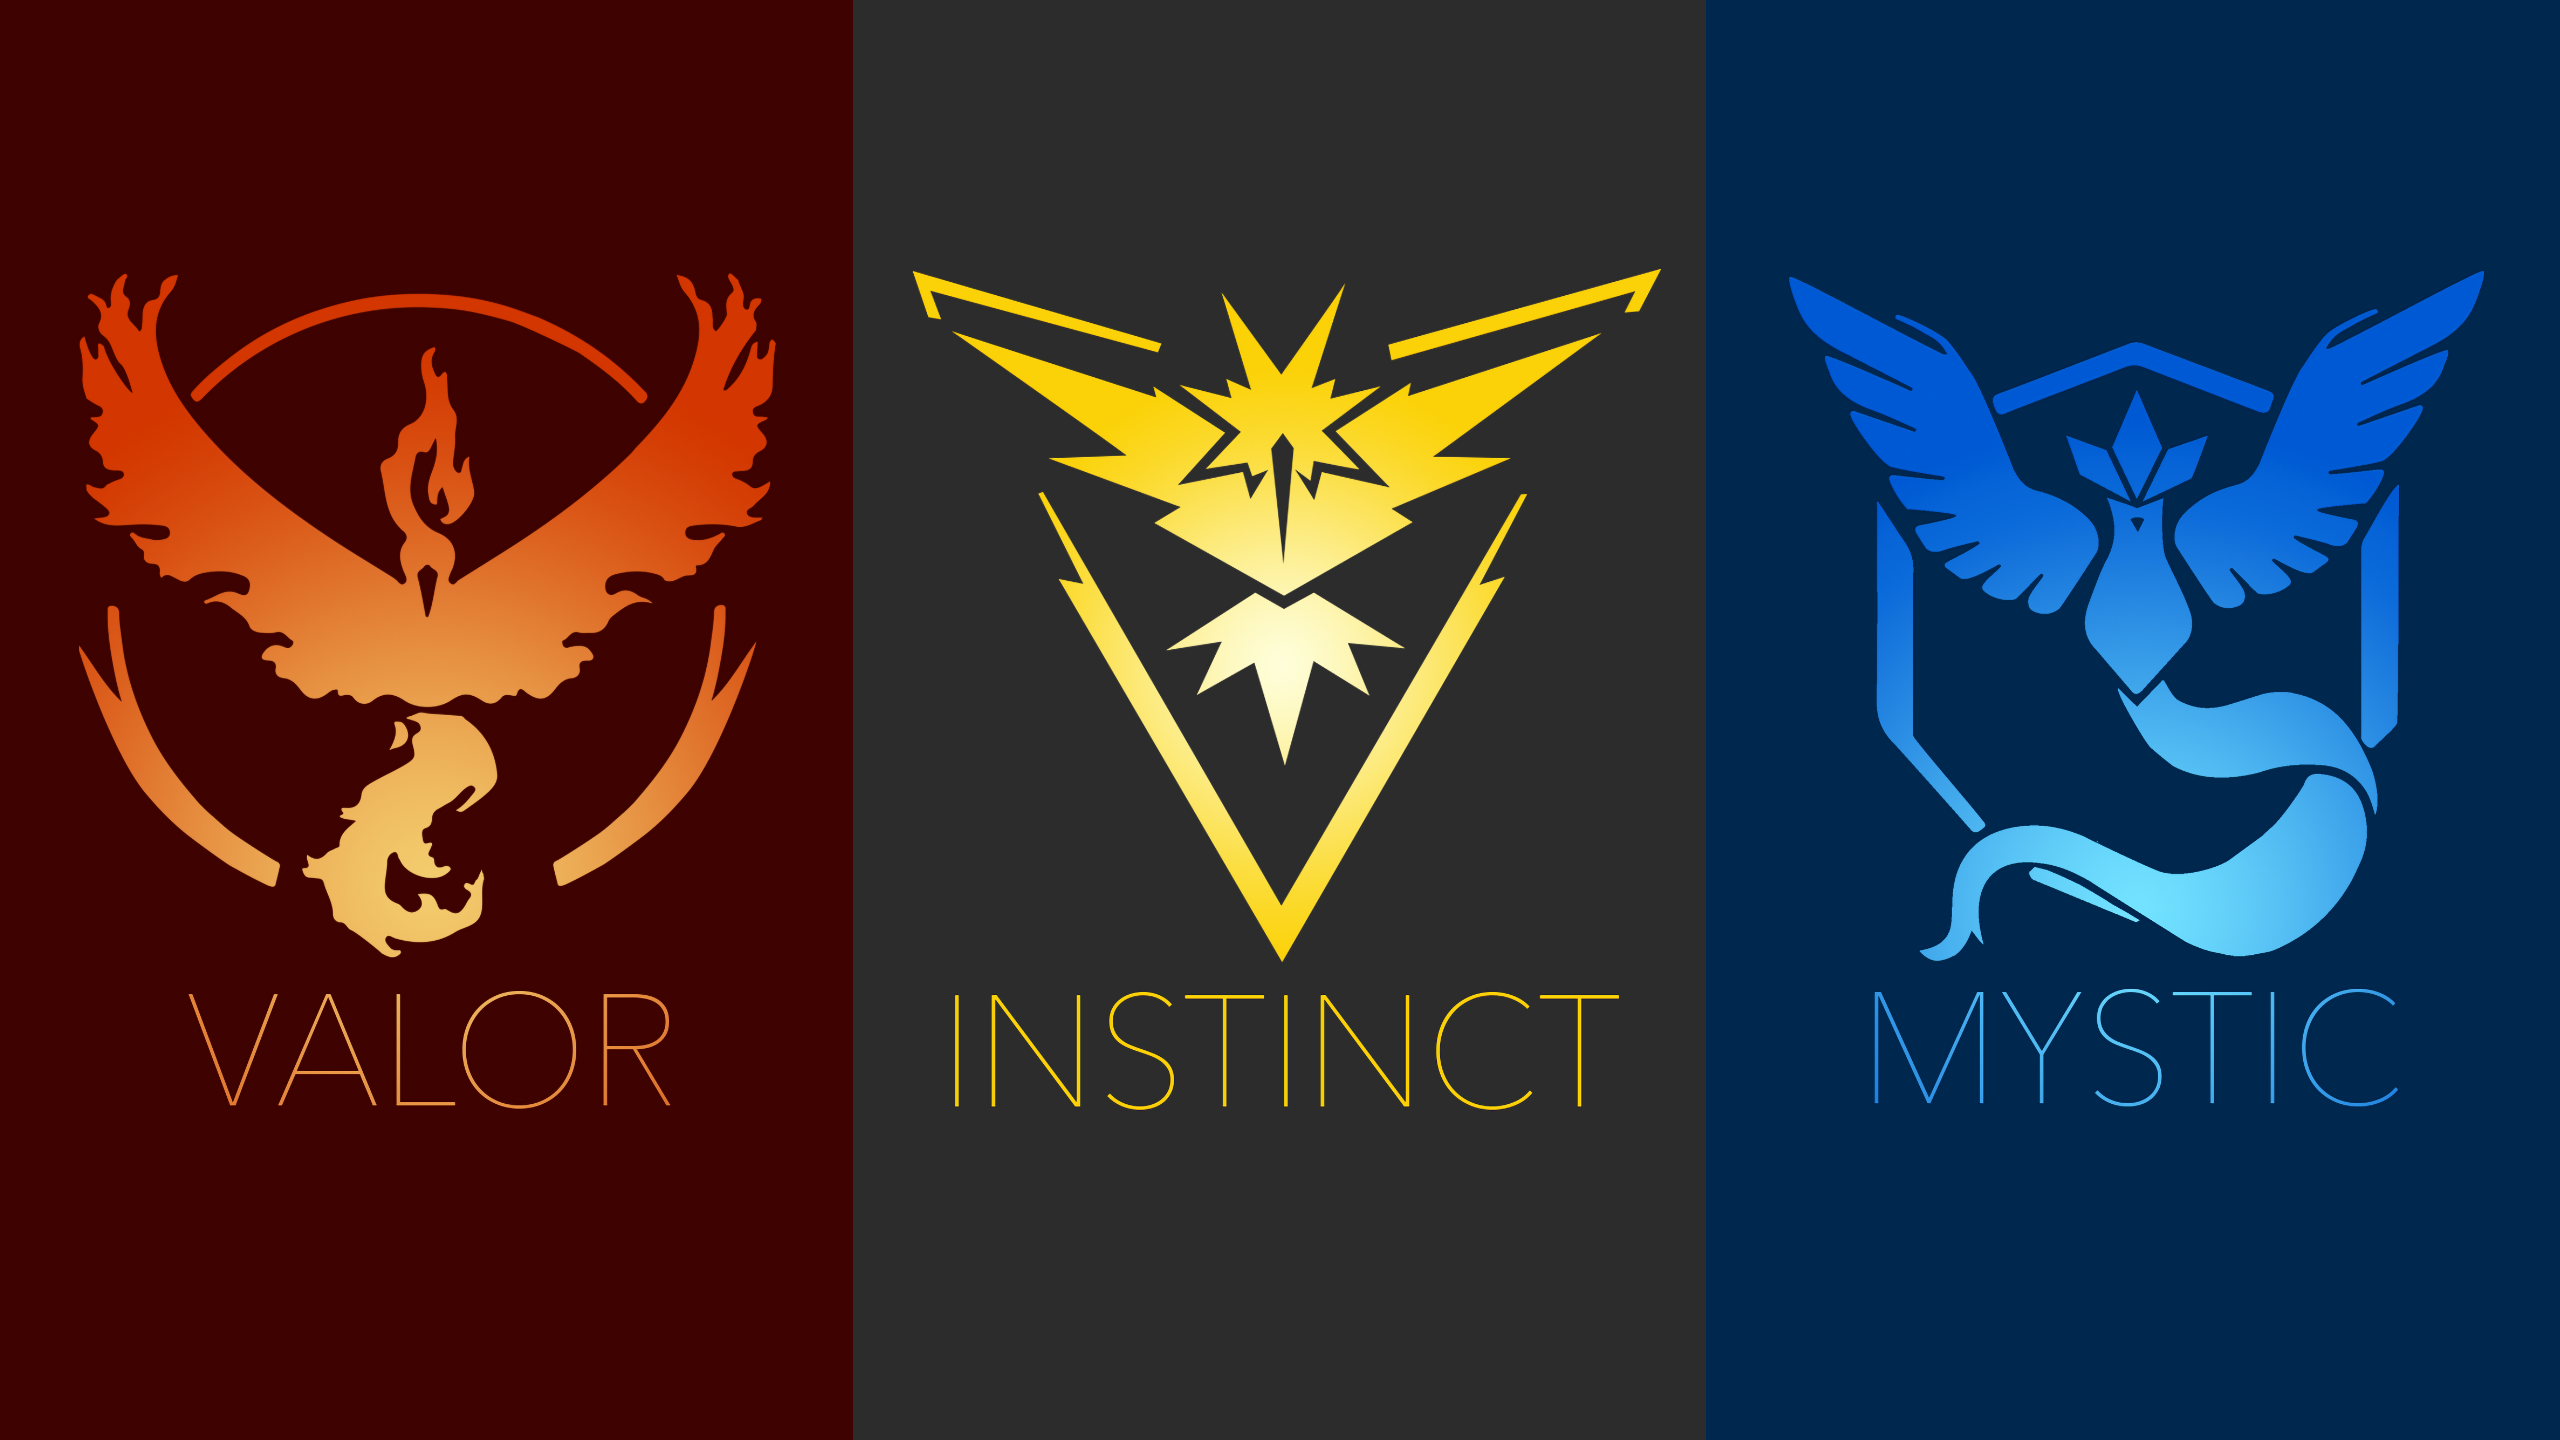 33 Team Valor Hd Wallpapers Background Images Wallpaper Abyss